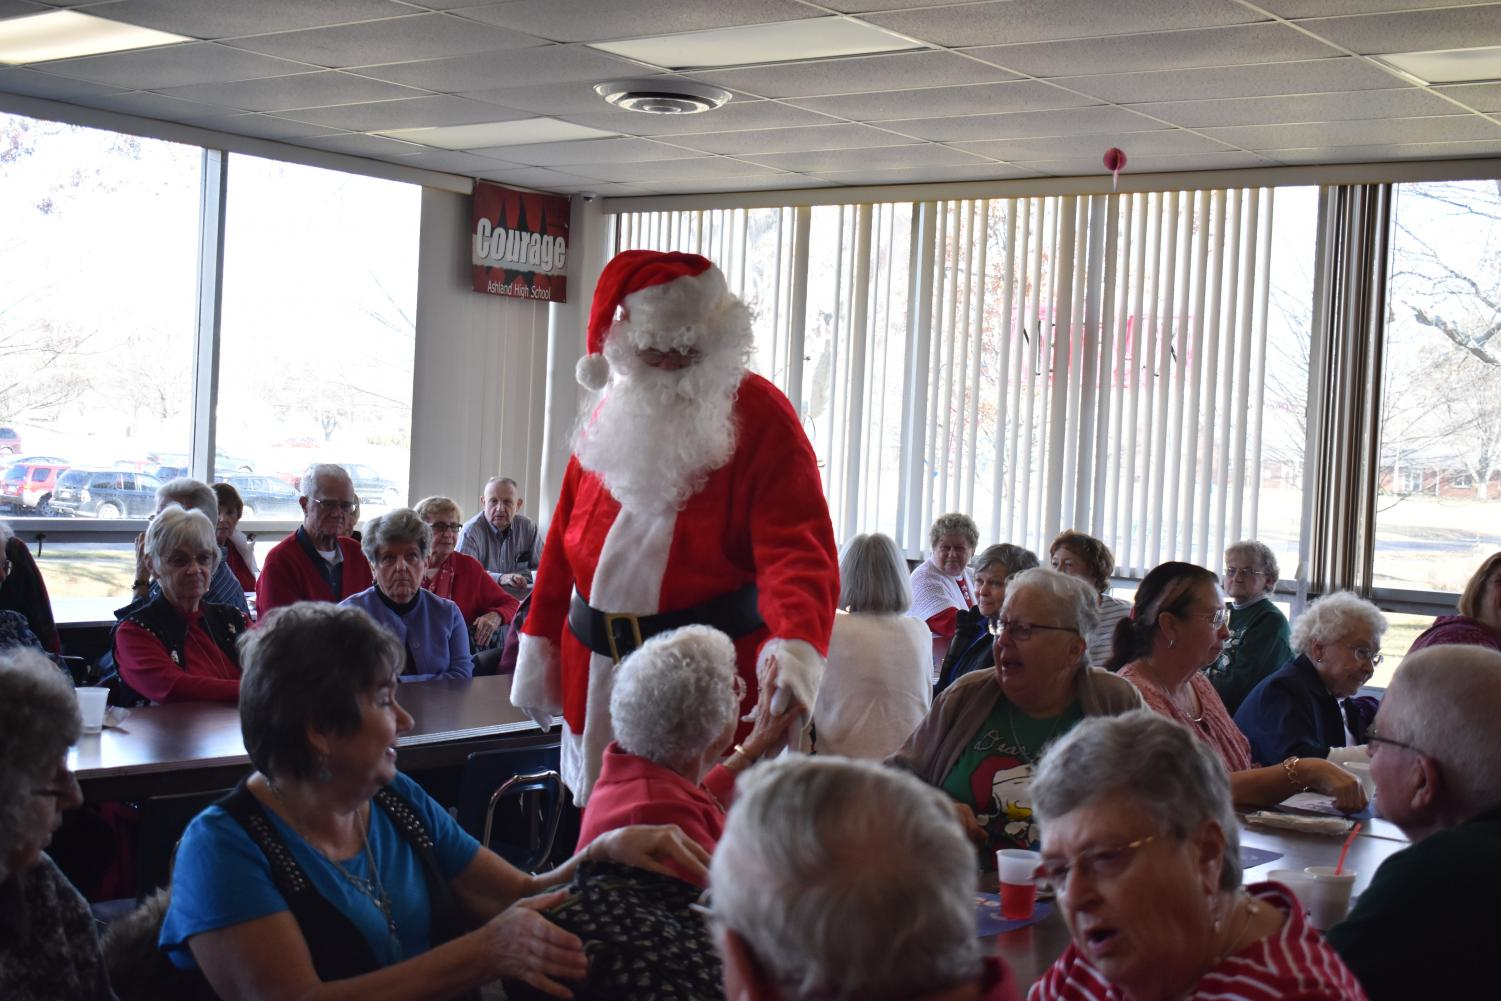 Senior citizen luncheon features Santa; brings joy to students, staff and seniors.